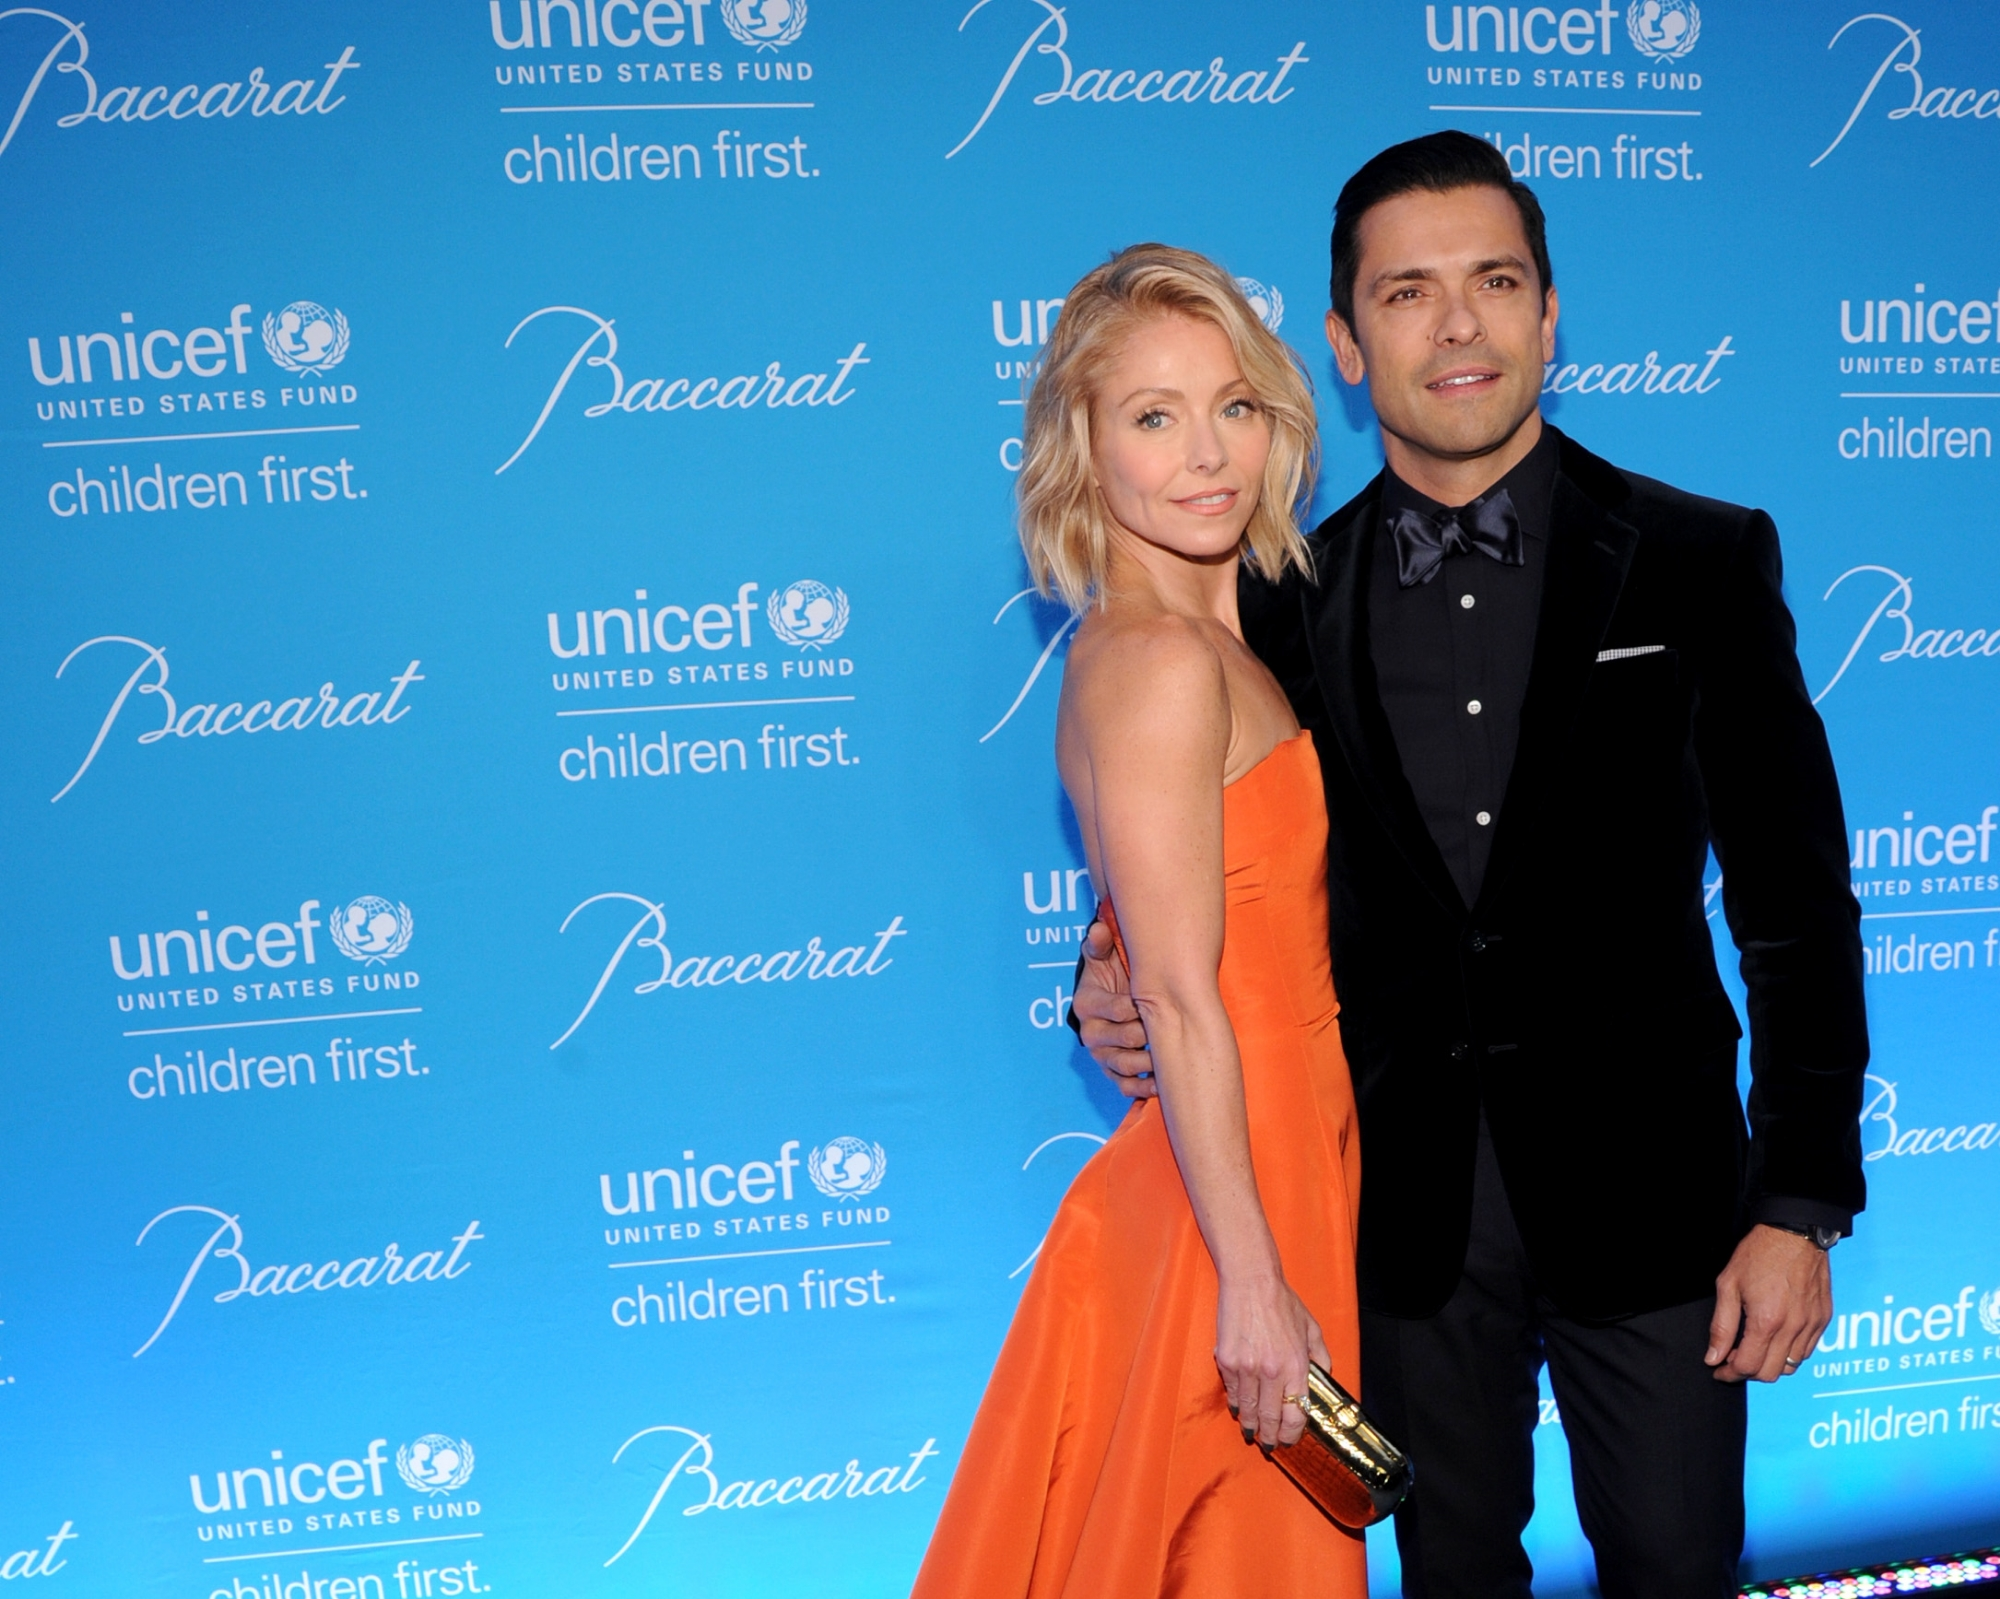 Kelly Ripa and Mark Consuelos ©2014 Bryan Bedder/Getty Images for UNICEF